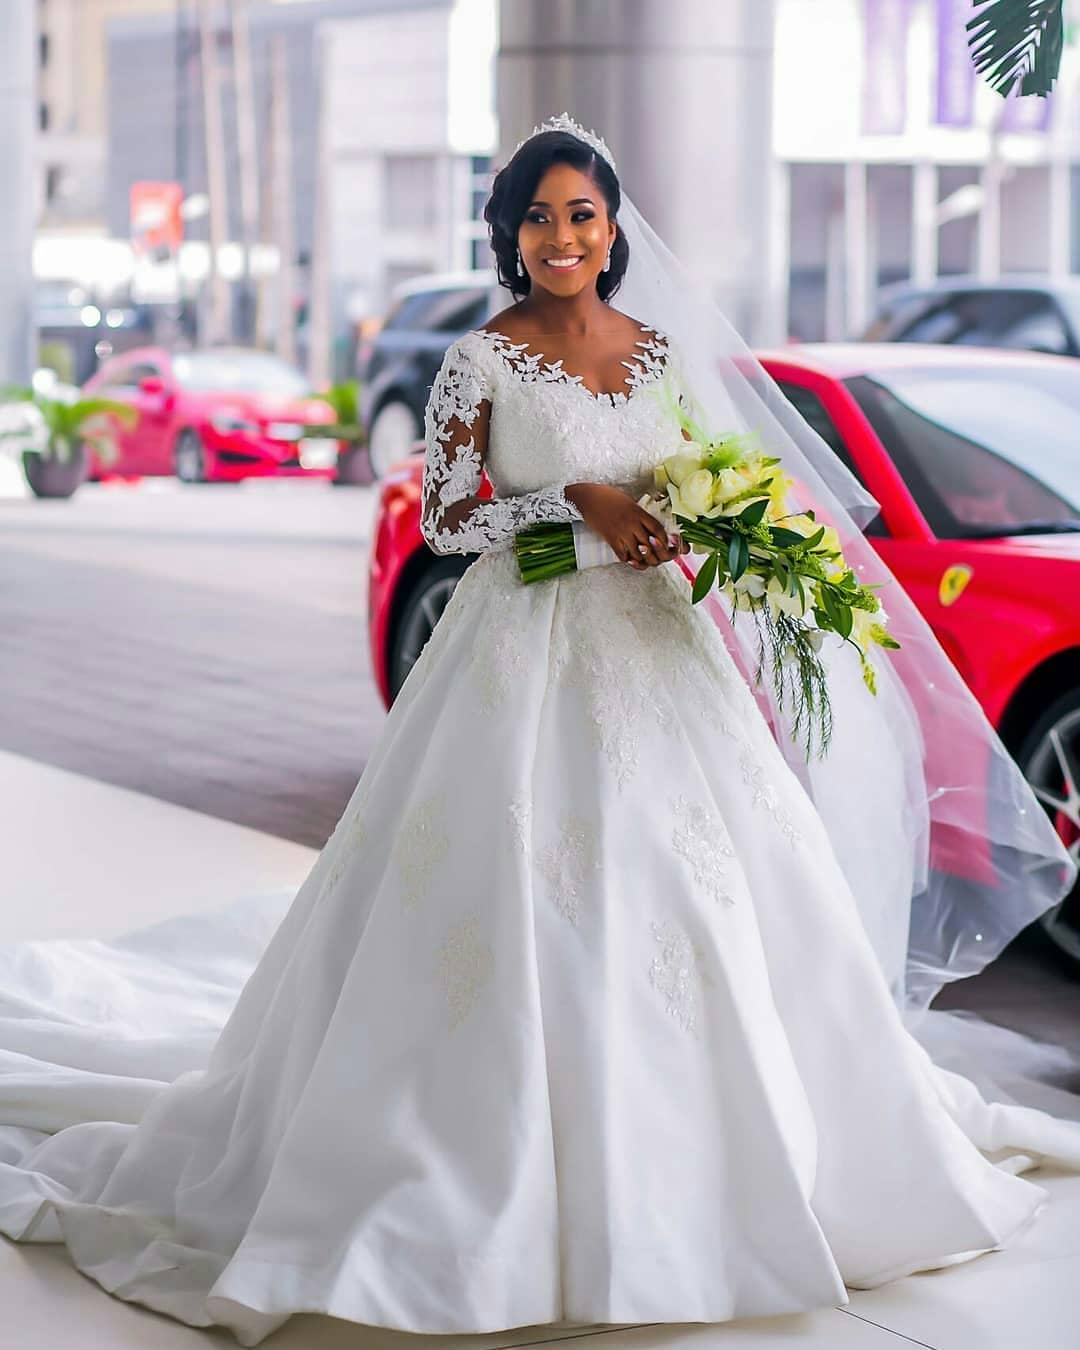 2018 Wedding Gowns That Will Make You Go Gaga!